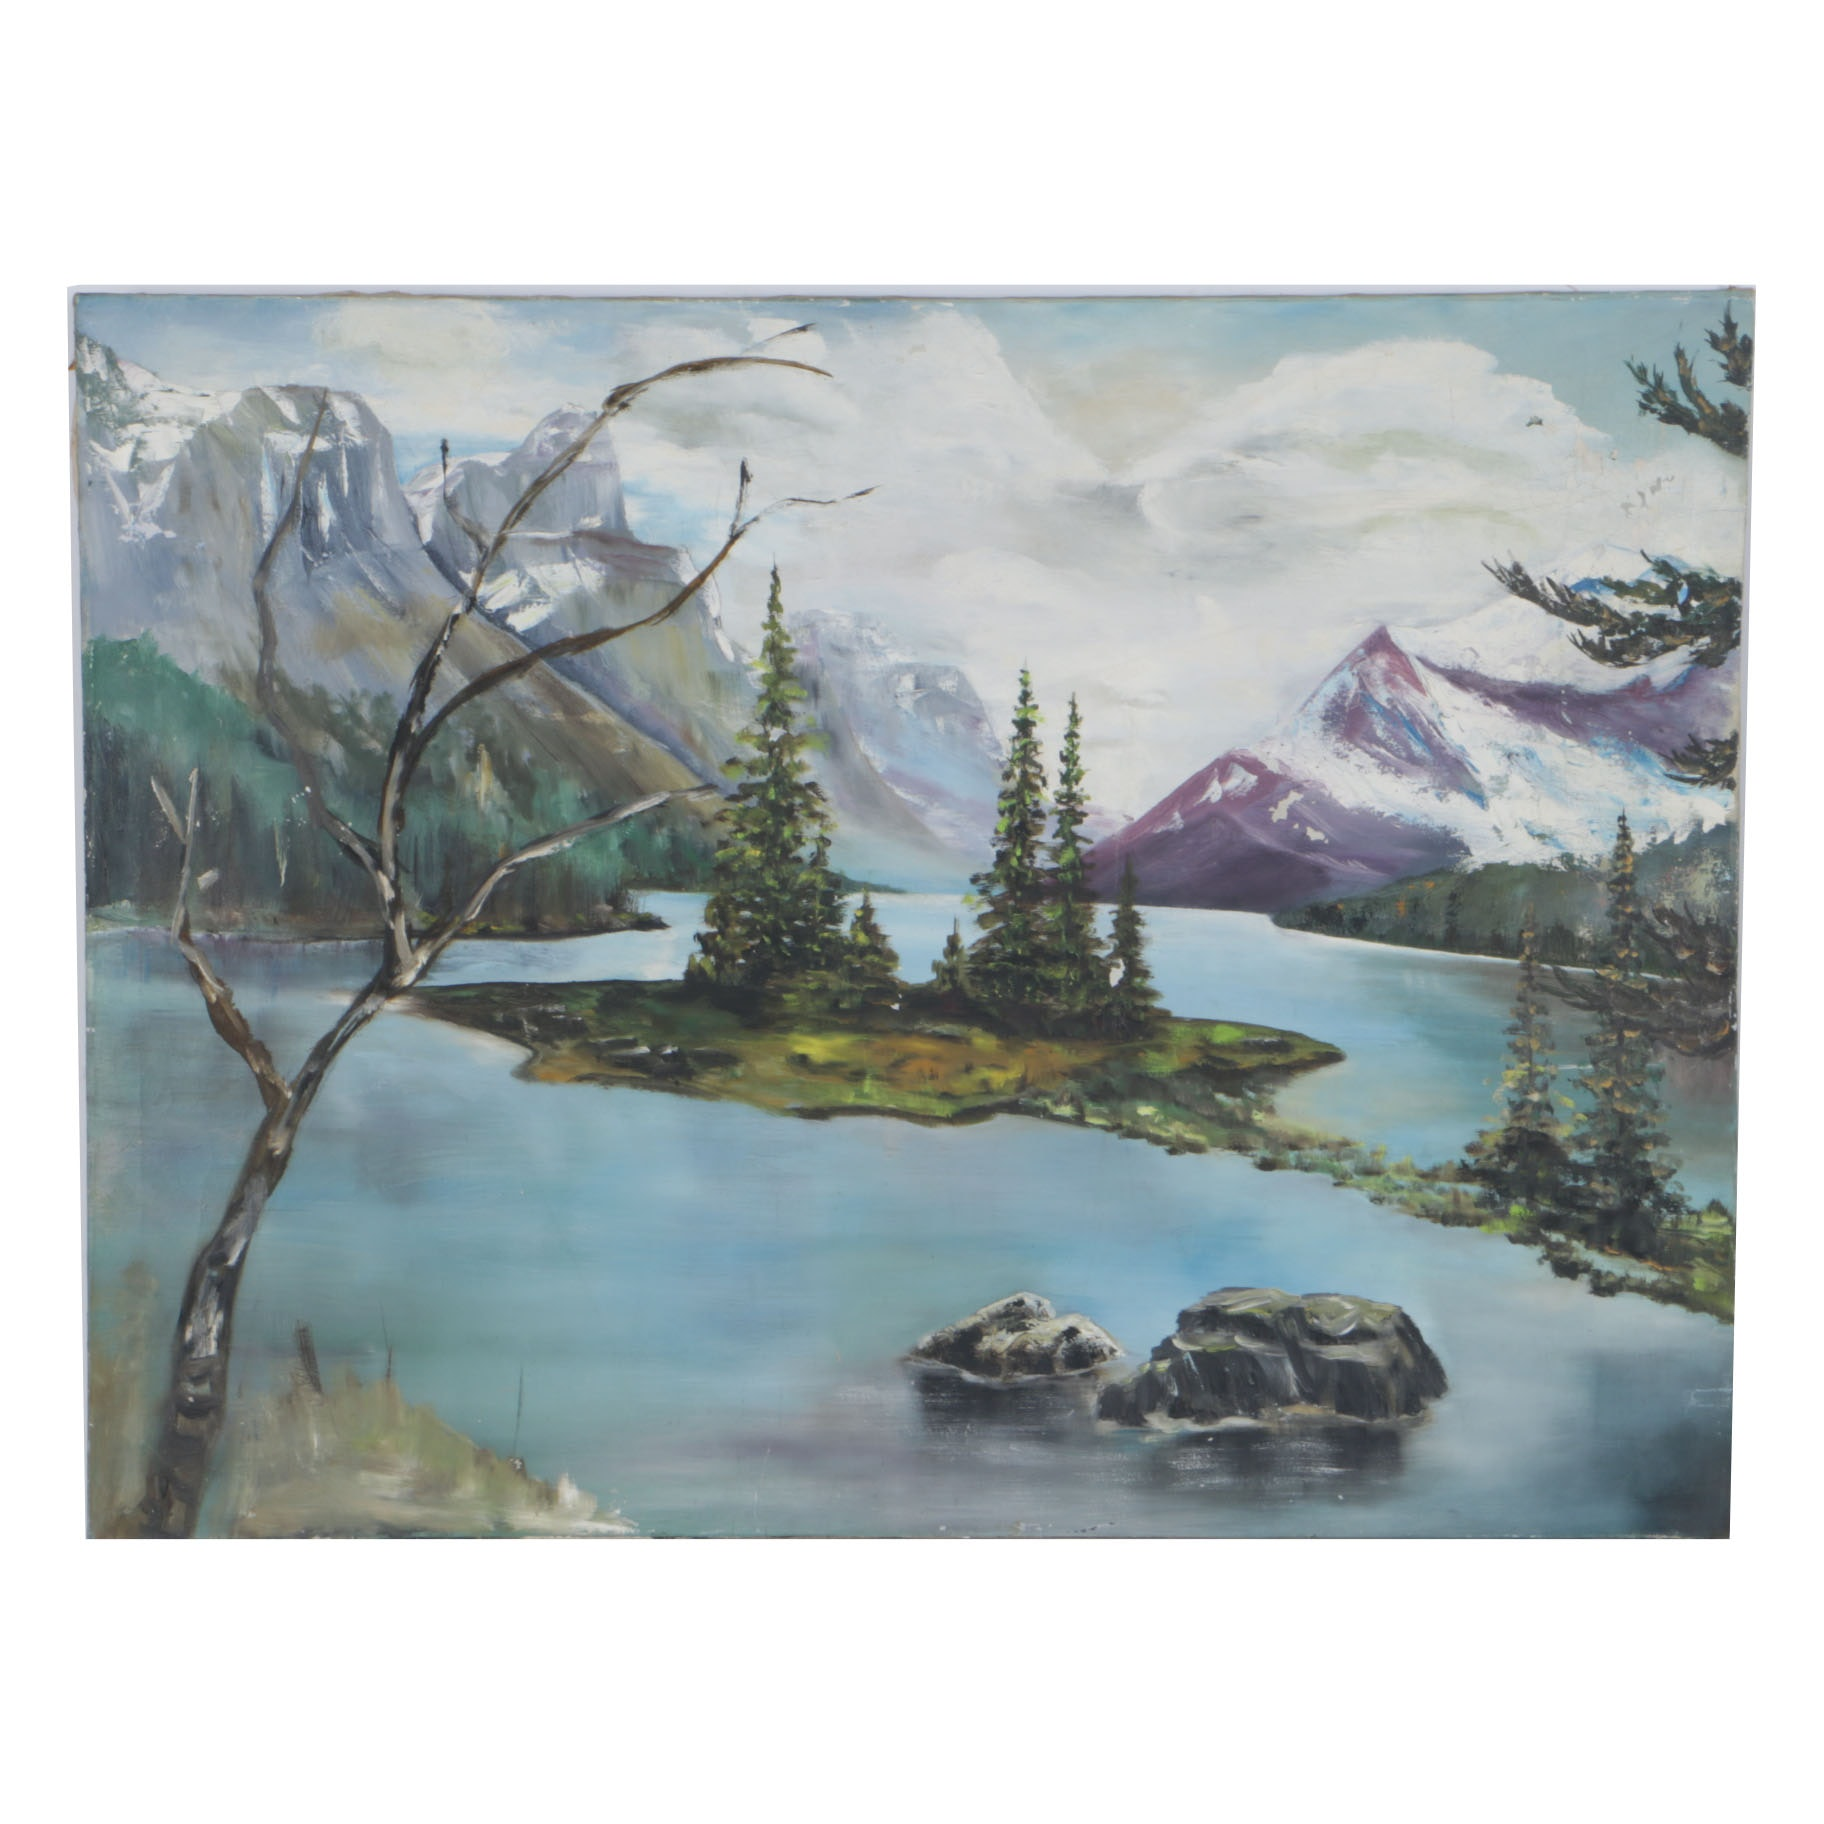 Oil Painting on Canvas of a Mountain Lake